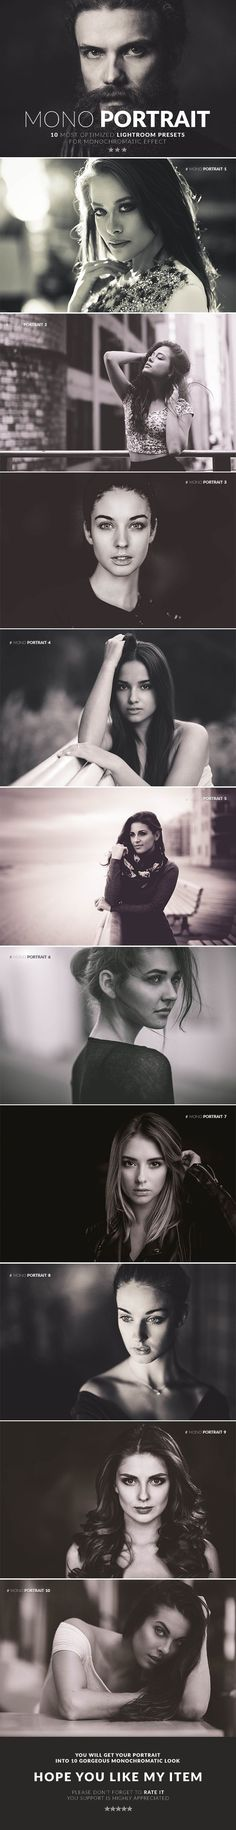 Mono Portrait Lightroom Presets - Lightroom Presets Add-ons